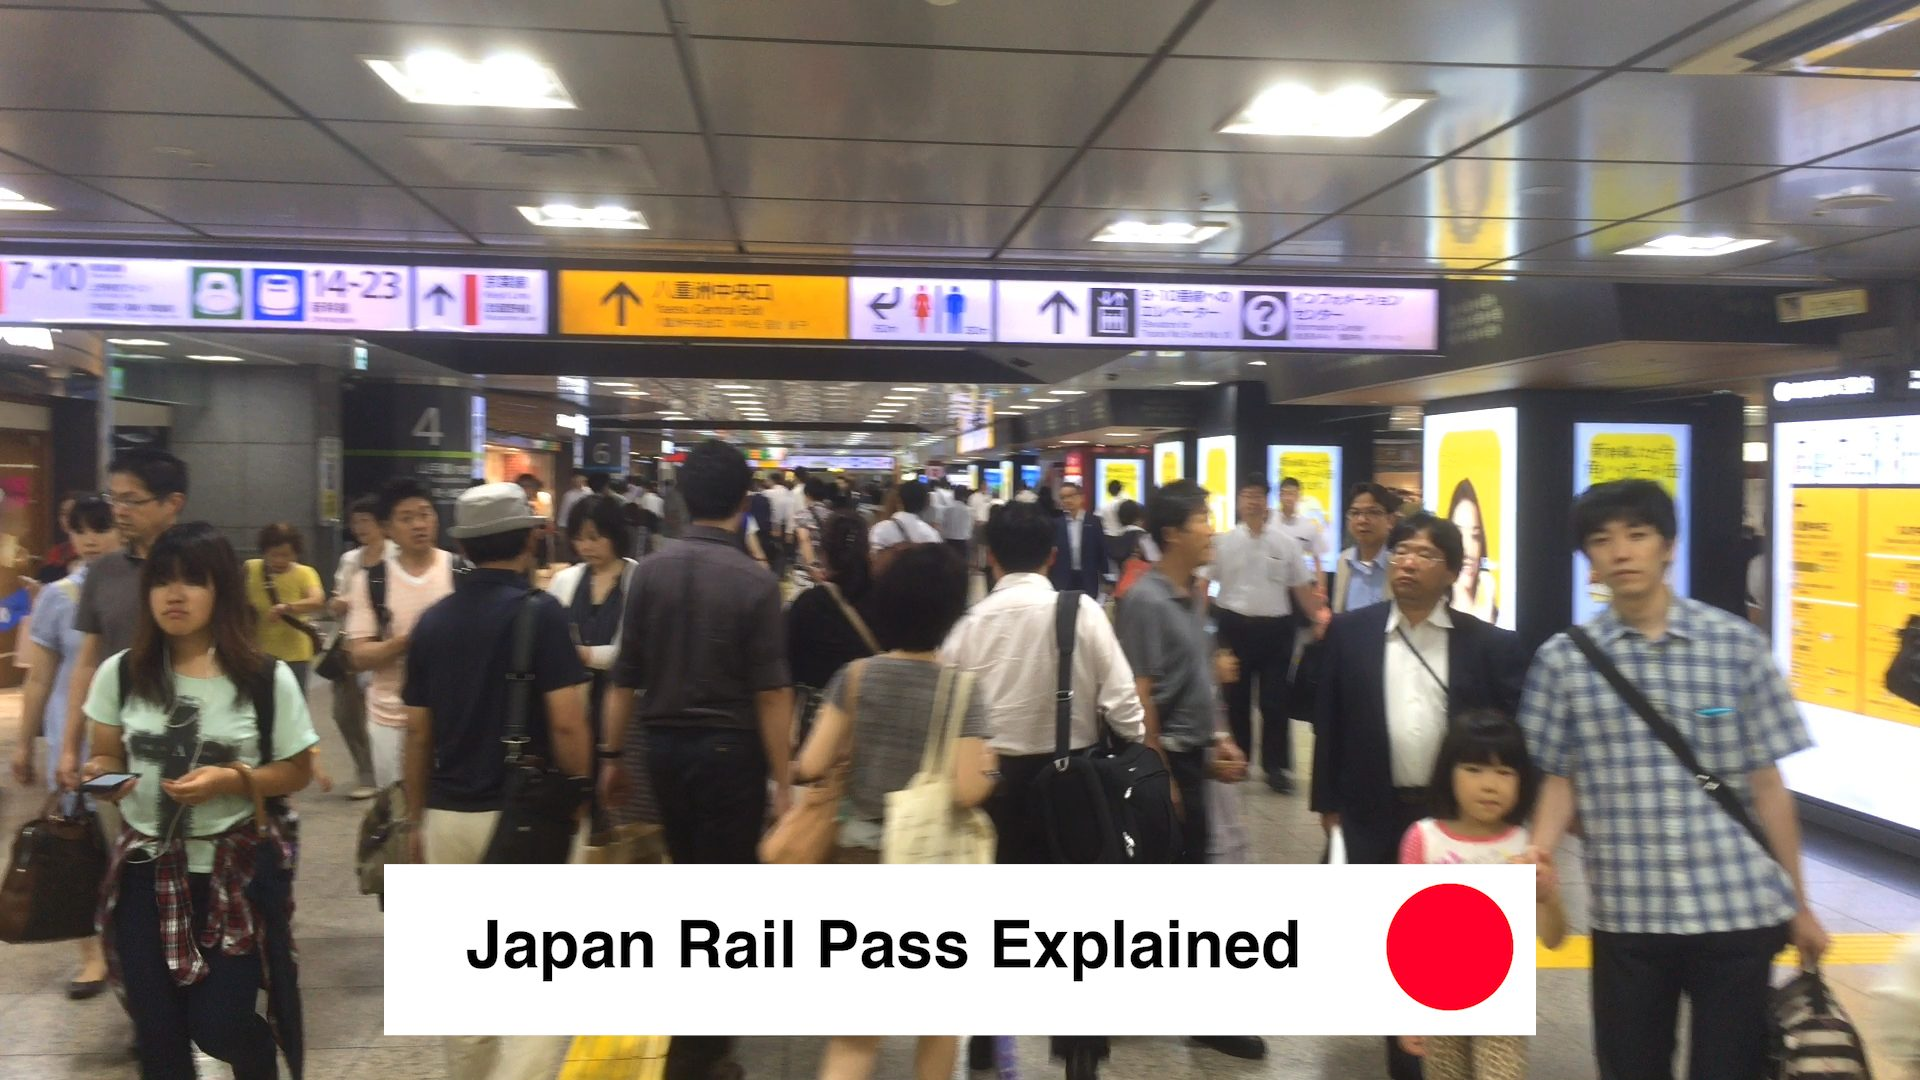 JR Rail Pass Explained - Where To Buy Japan Rail Pass How To Use JR Pass In Tokyo. JR Pass Price